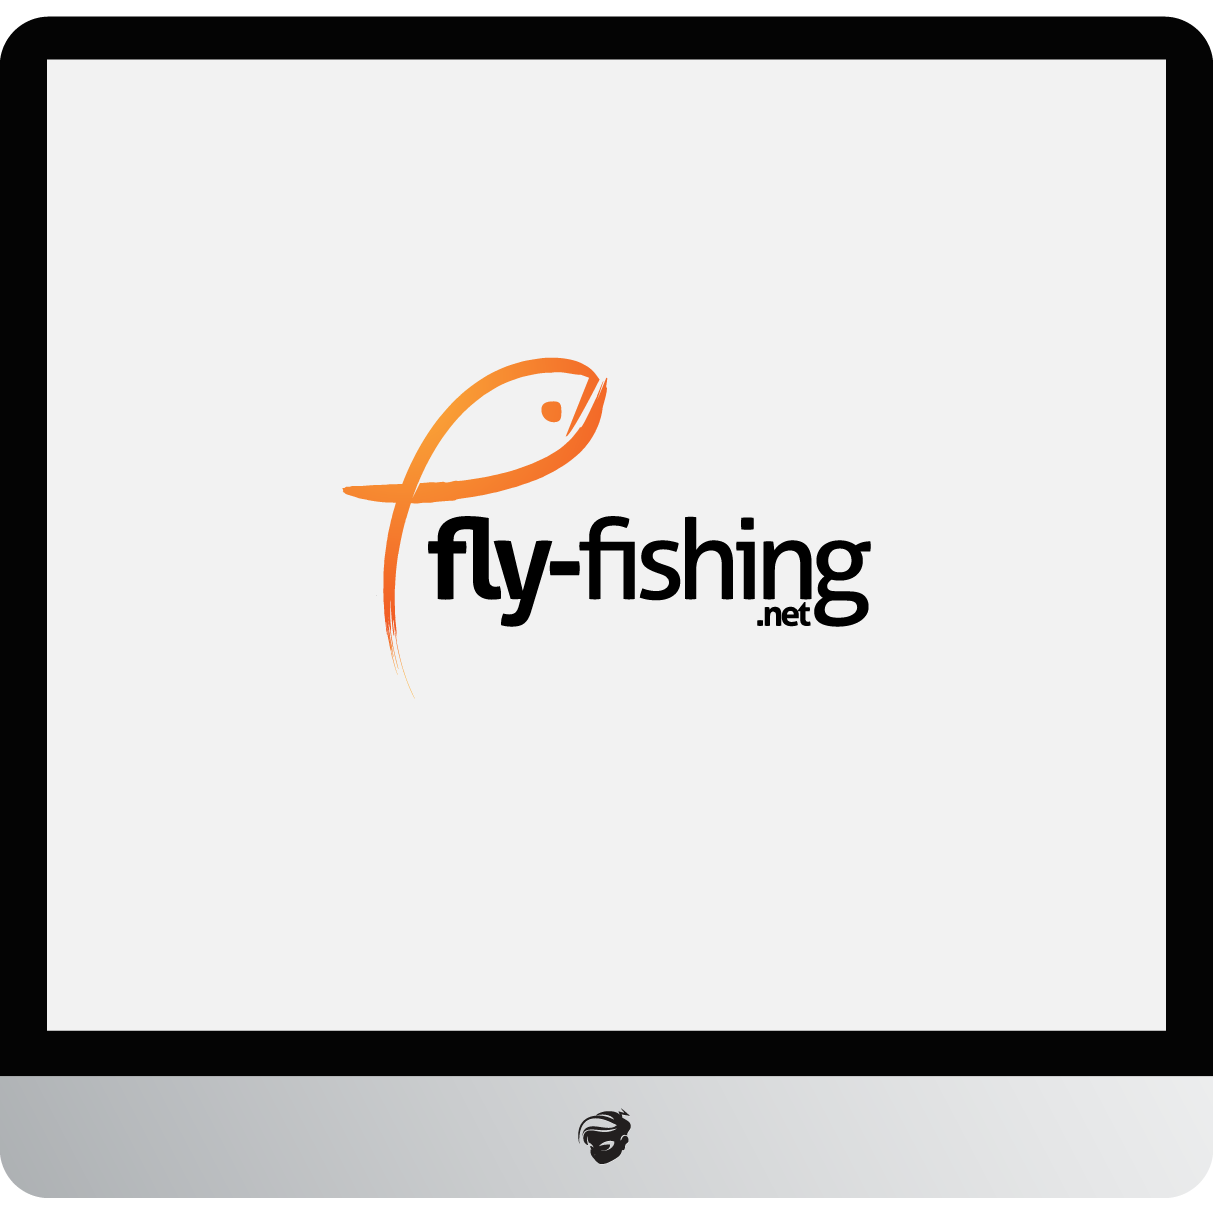 Logo Design by zesthar - Entry No. 130 in the Logo Design Contest Artistic Logo Design for fly-fishing.net.